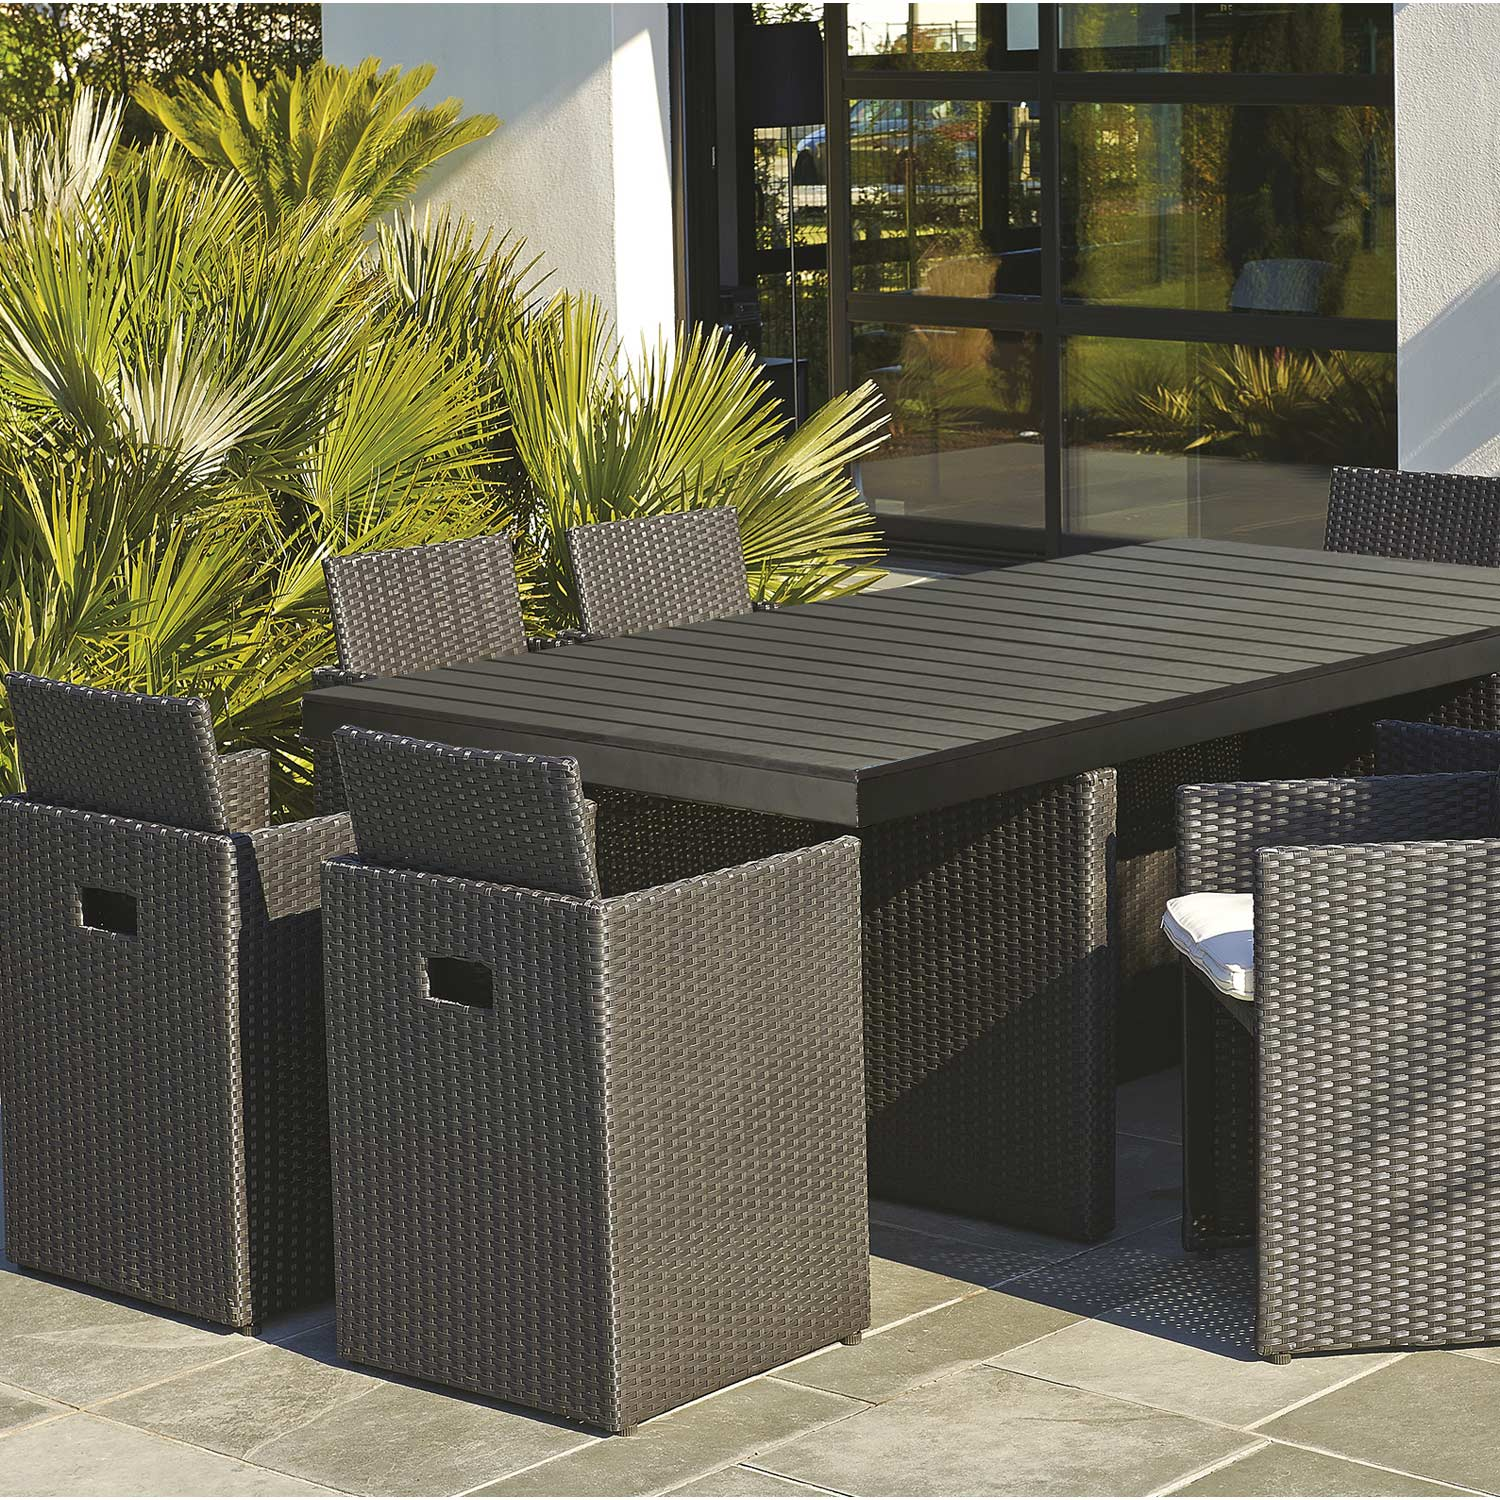 Salon de jardin encastrable r sine tress e noir 1 table - Salon de jardin en resine tressee carrefour ...